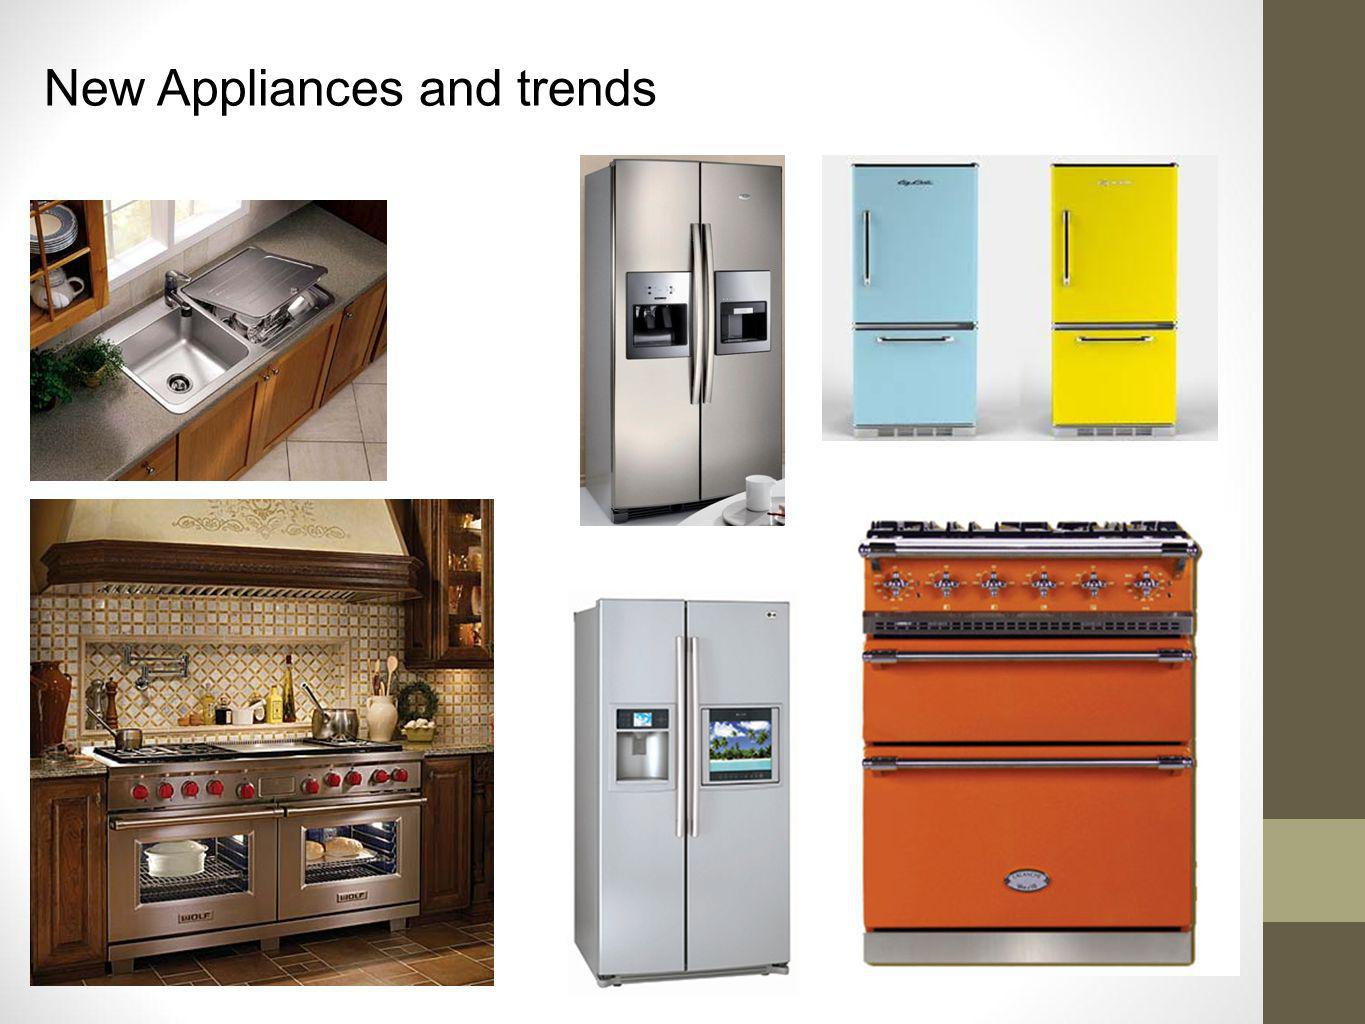 New Appliances and trends